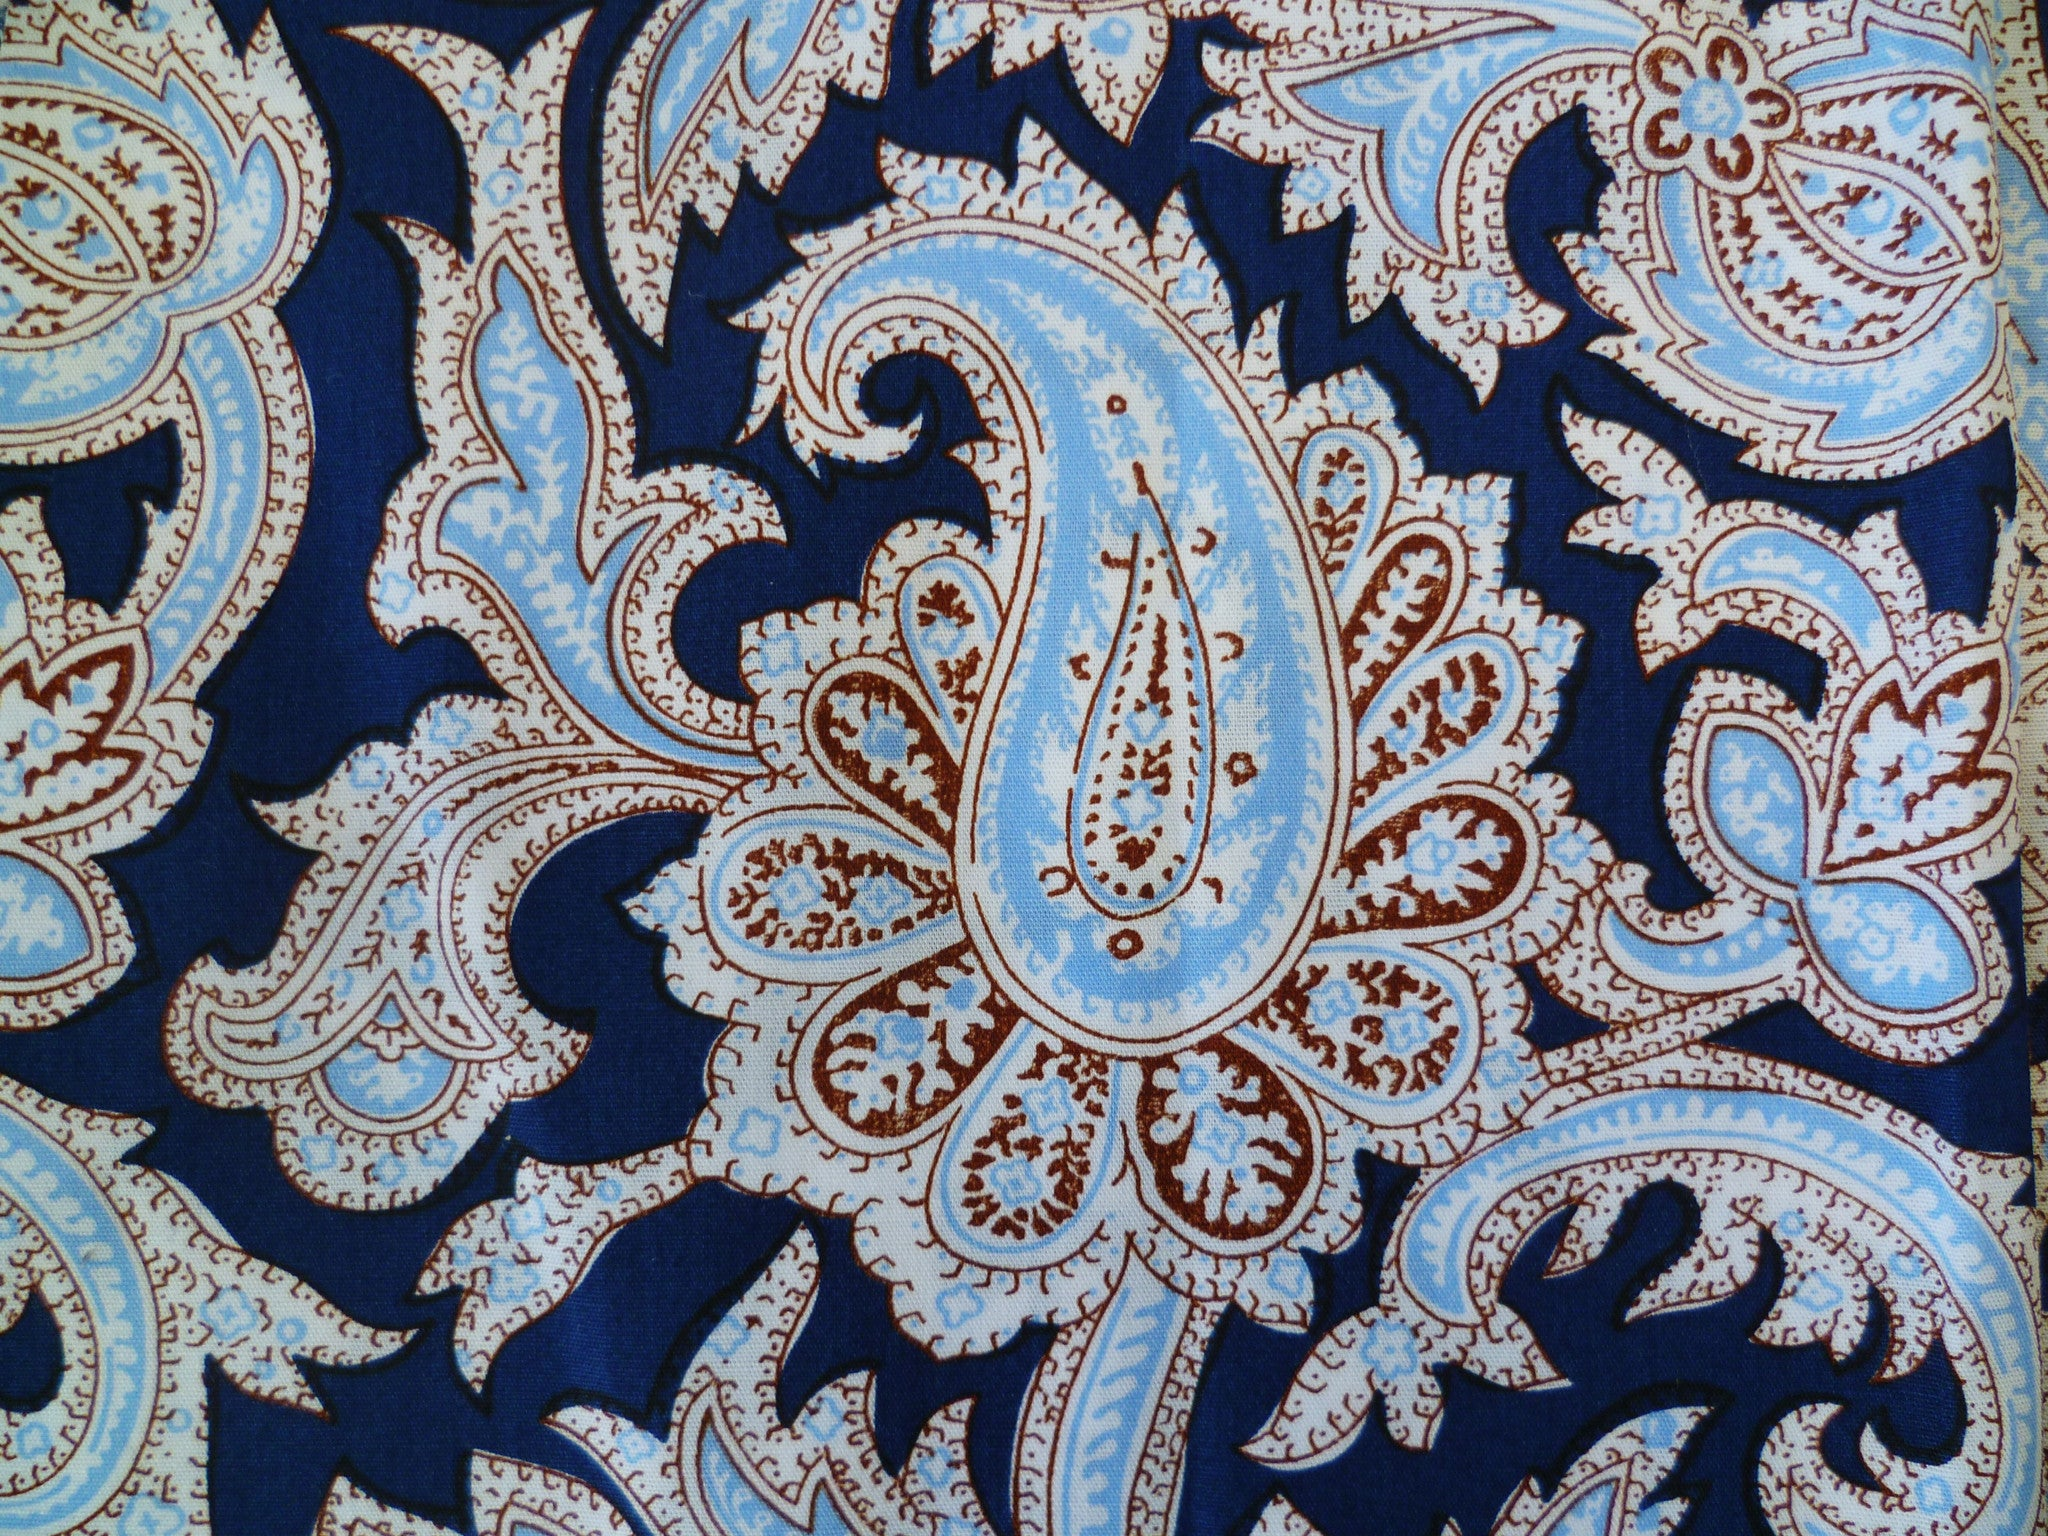 Navy, Light Blue, Red-Brown and White Paisley Patterned Cotton